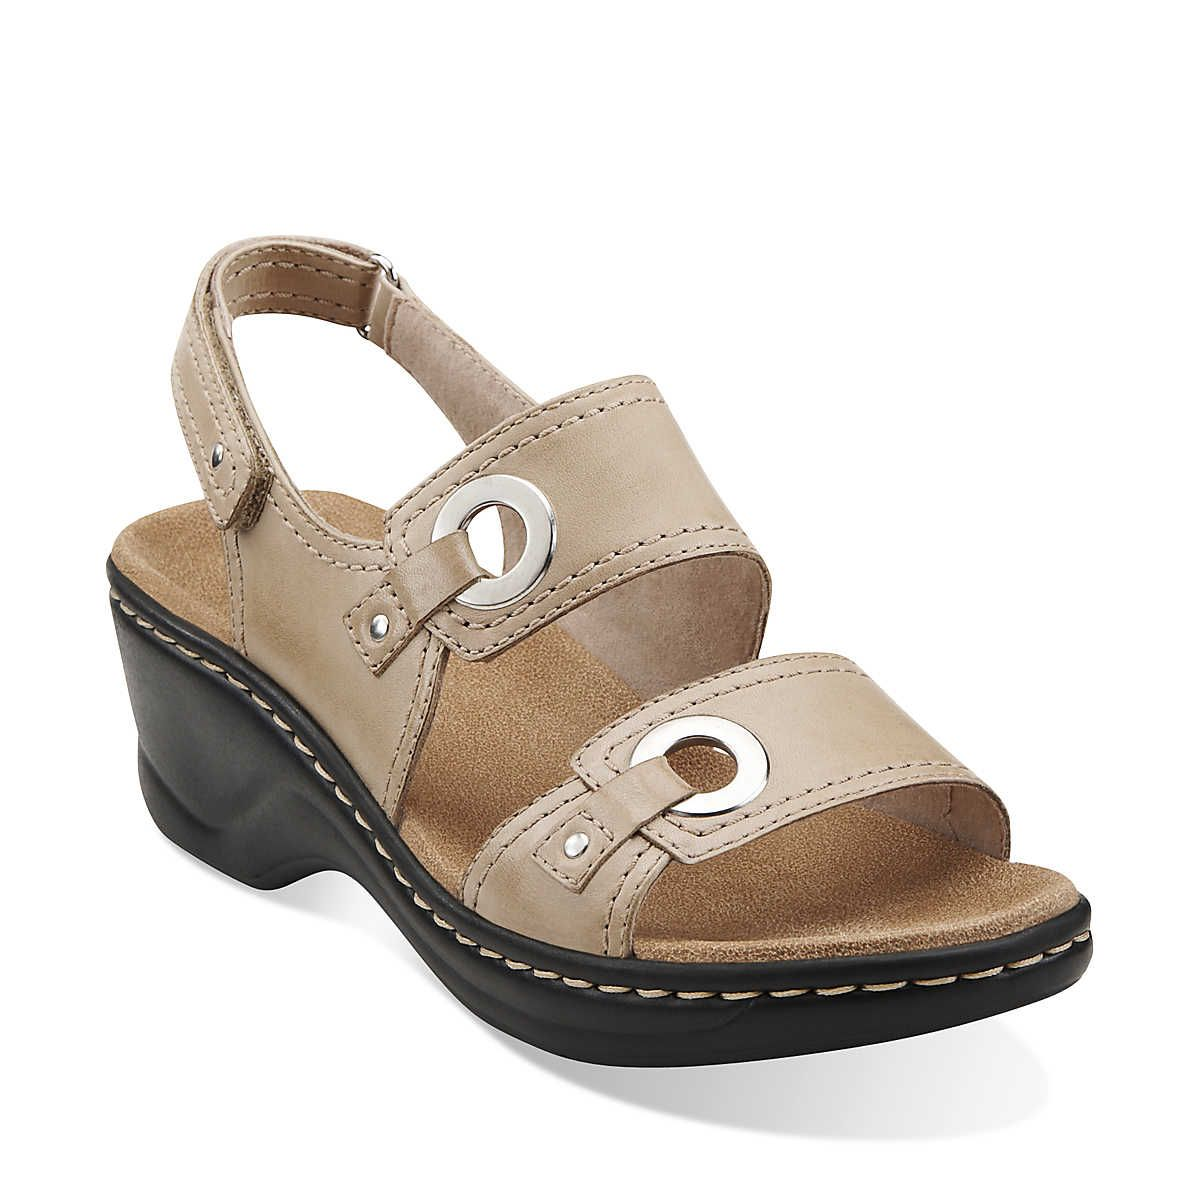 94f511b80bd Lexi Birch in Bone Leather - Womens Sandals from Clarks